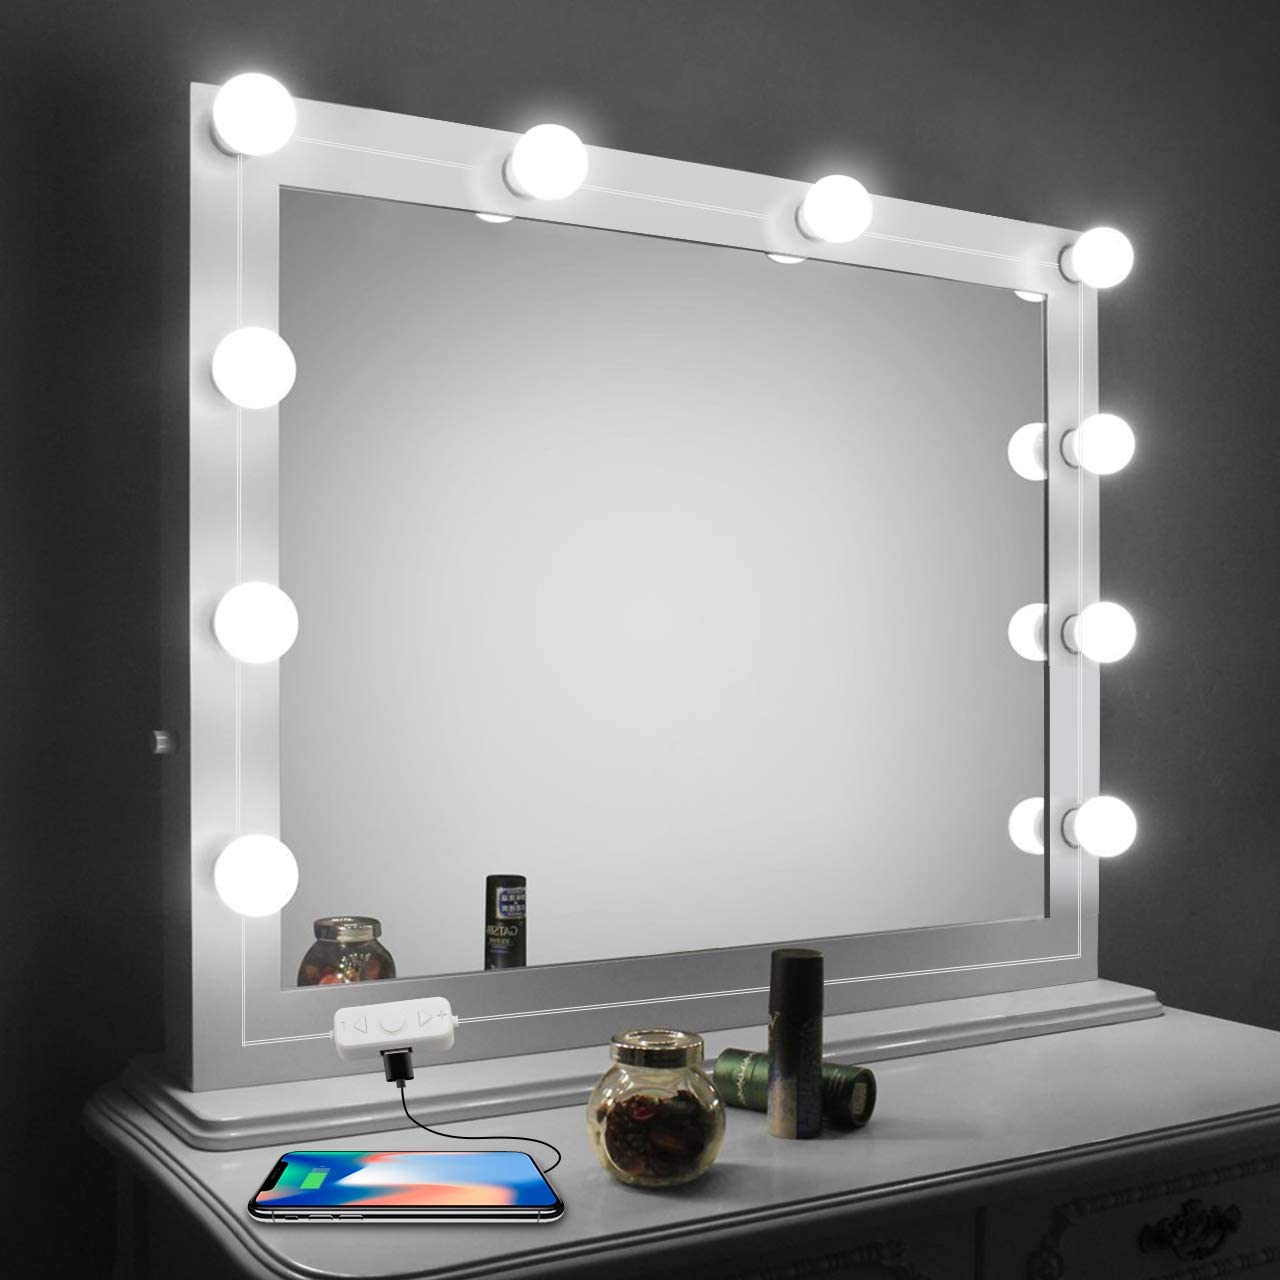 Vanity Mirror Lights Kit Led Lights For Mirror With Dimmer And Usb Phone Charger Led Makeup Mirror Lights Kit Hollywood Style Lighting Fixture Strip 6500k For Bathroom Dressing Room Vanity Table Walmart Com